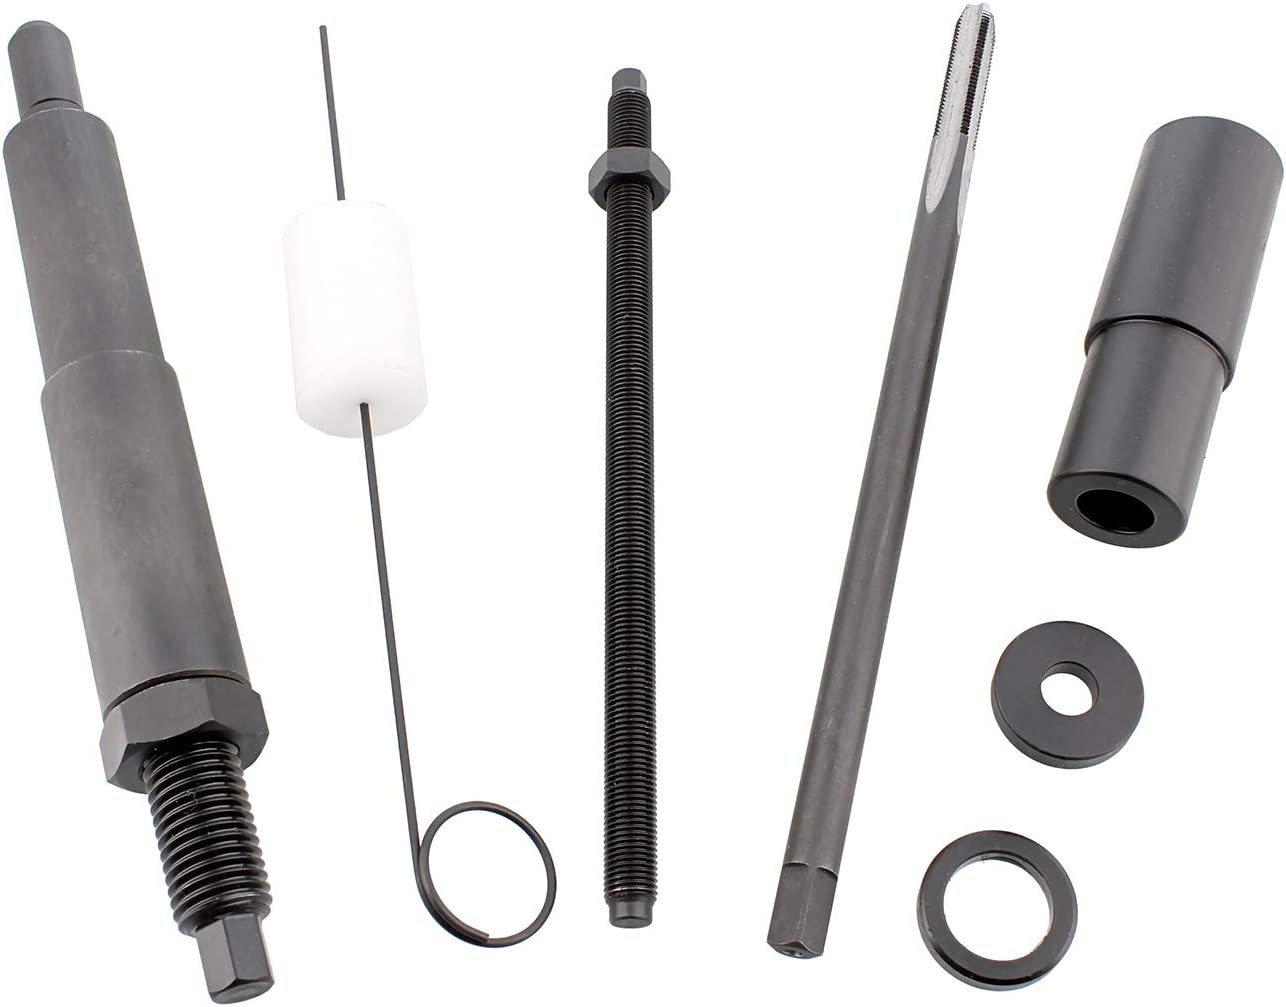 ABN Broken Spark Plug Removal Tool Challenge the lowest price Compatible with Fo Set Master Sale item